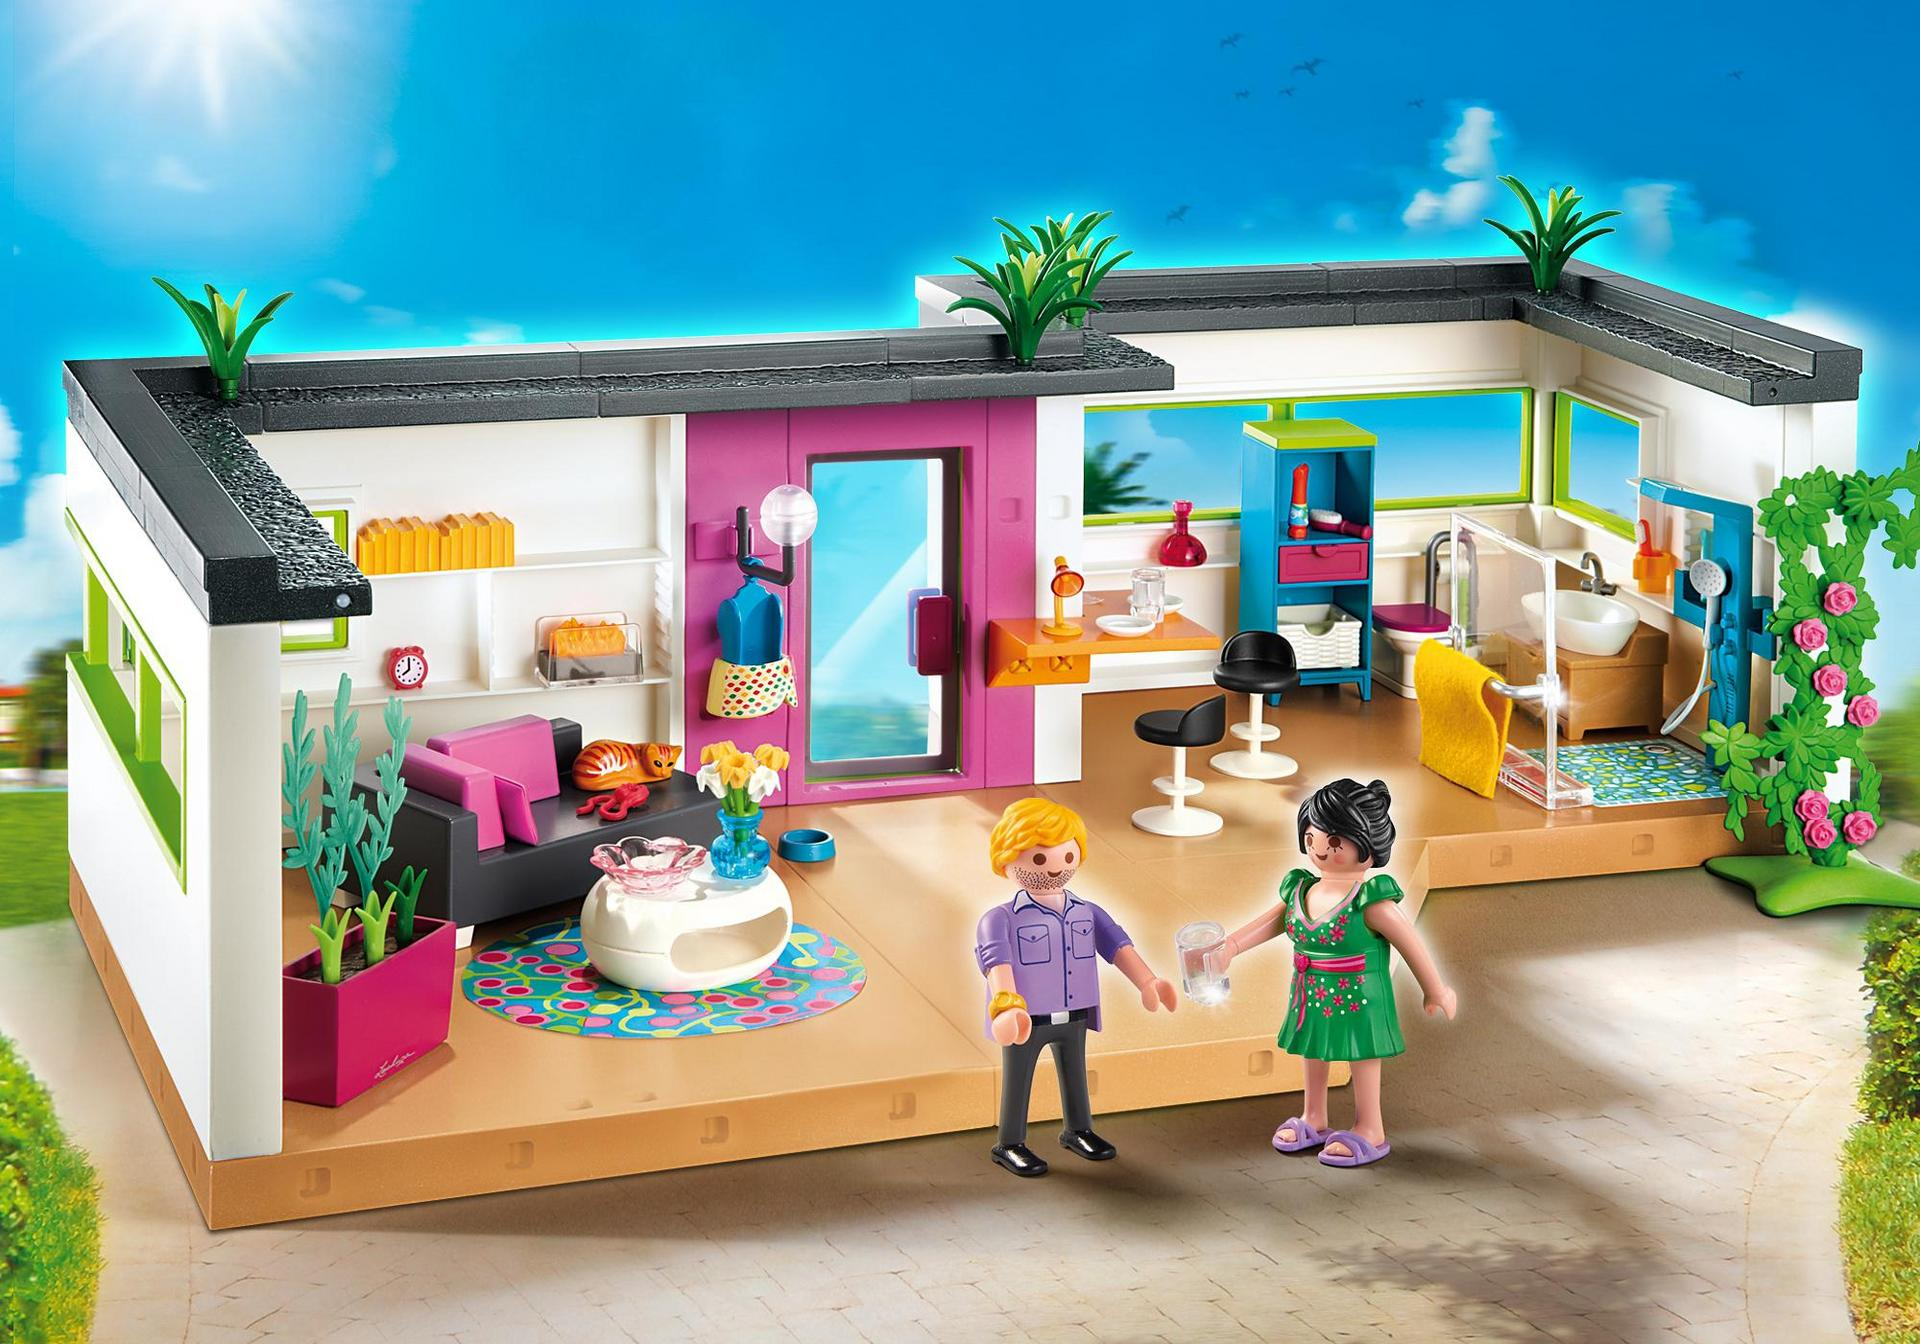 Studio des invit s 5586 playmobil france for Agrandissement maison moderne playmobil